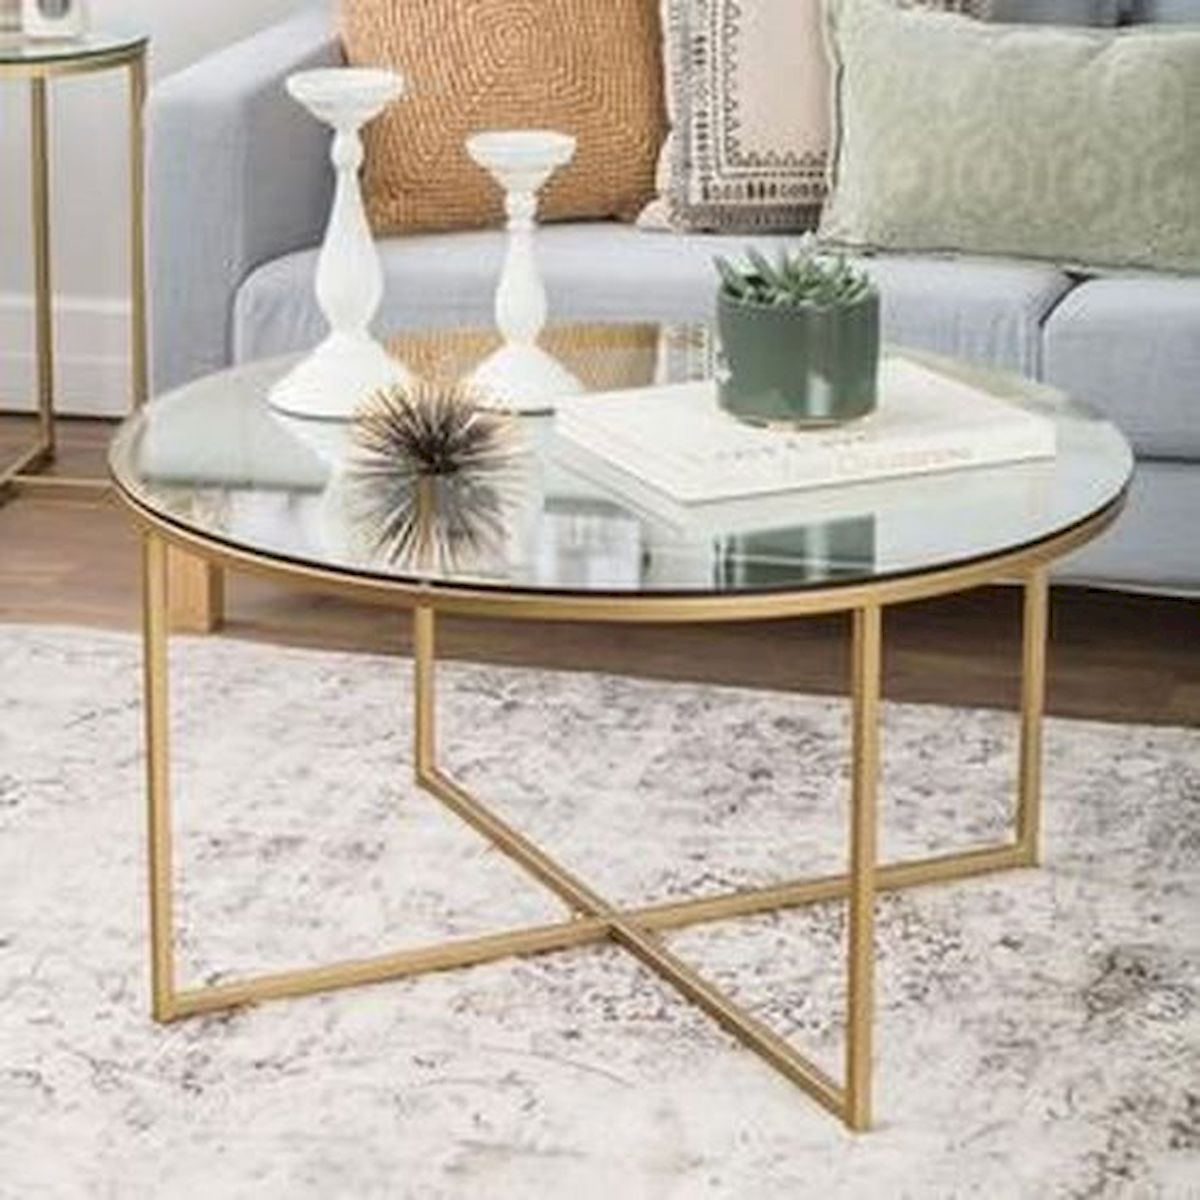 40 Awesome Modern Glass Coffee Table Design Ideas For Your Living Room (35)